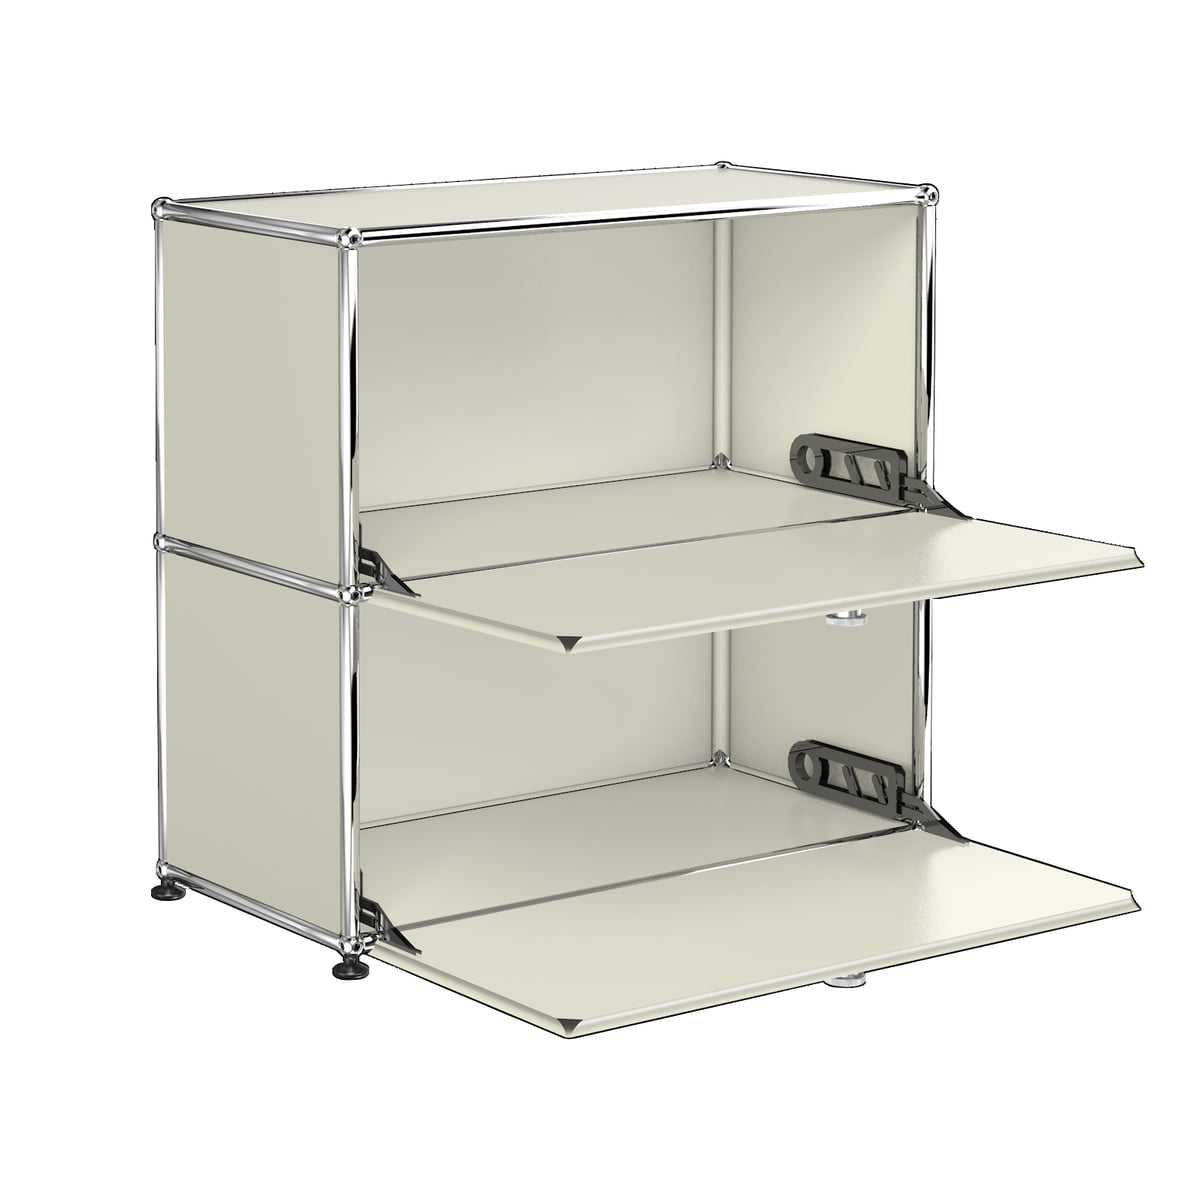 2 Compartment Sideboard By Usm Haller Connox